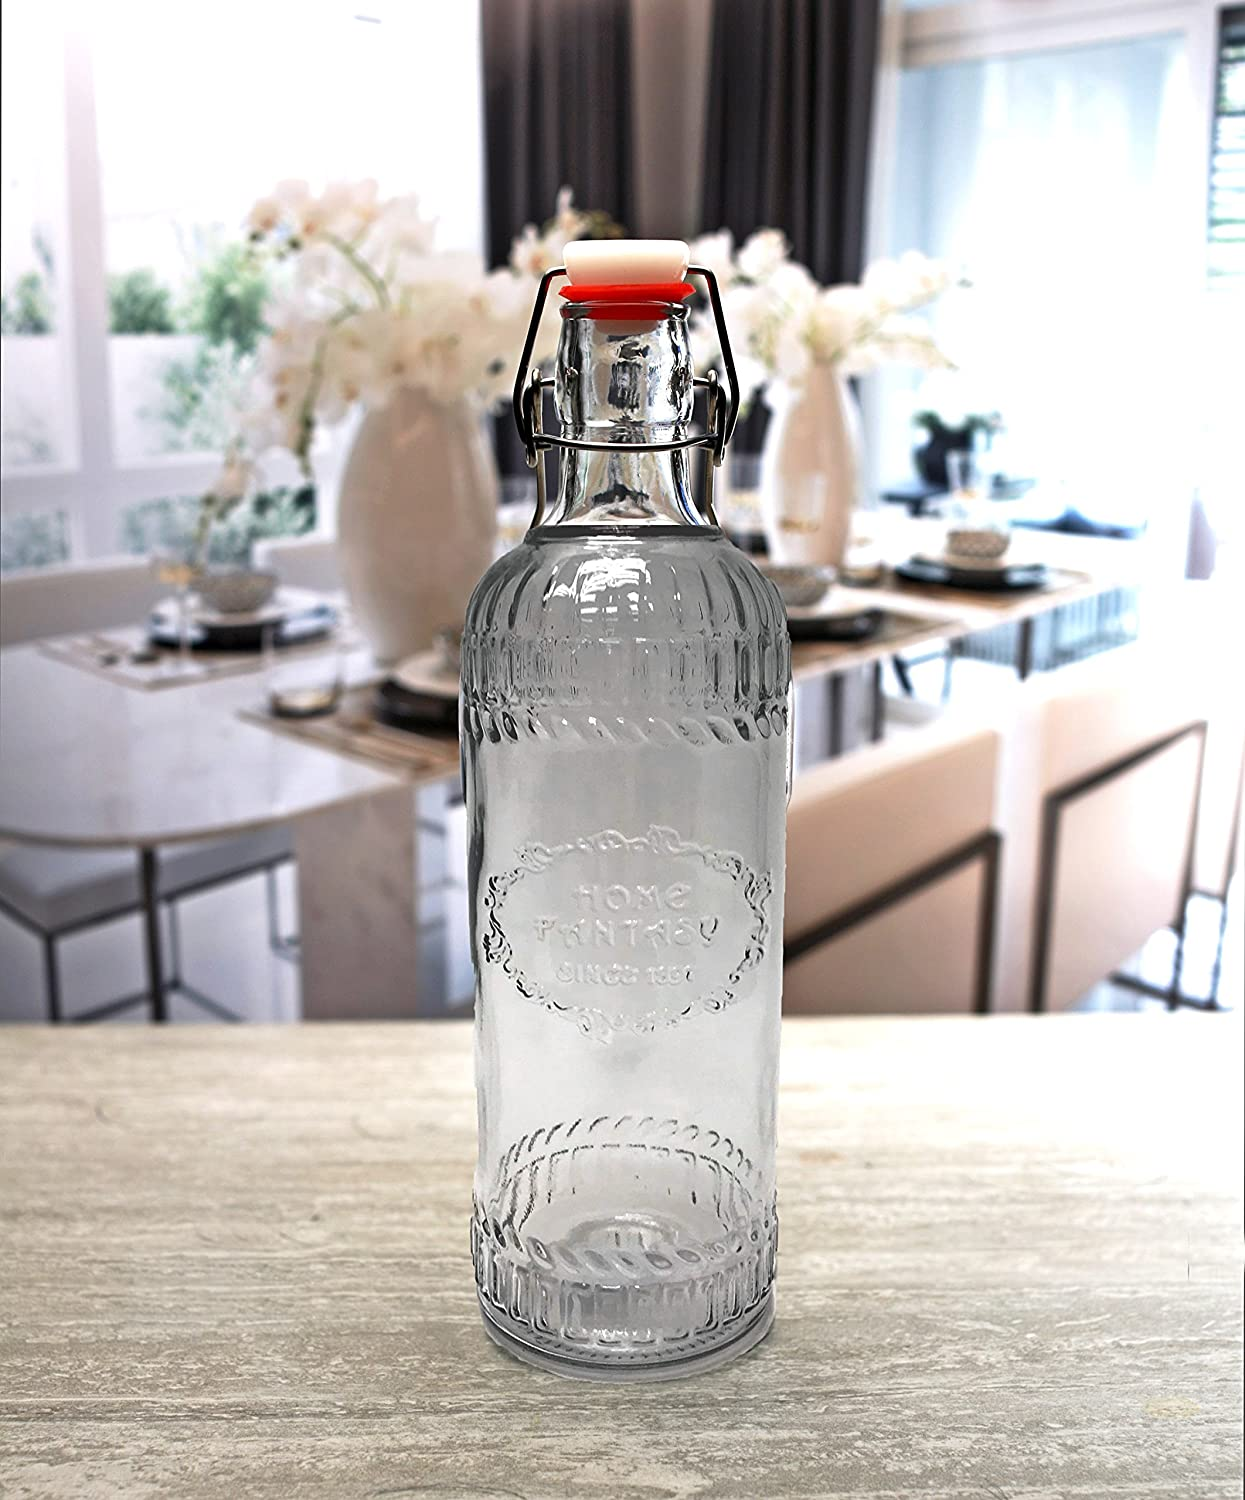 Circleware Manor Hill Hermetic Glass Bottle with Locking Swing Top Lid Fun Party Home Entertainment Glassware Drink Pitcher for Water, Milk, Juice, Beer, Ice Tea, Farmhouse Decor, 38 oz, Clear